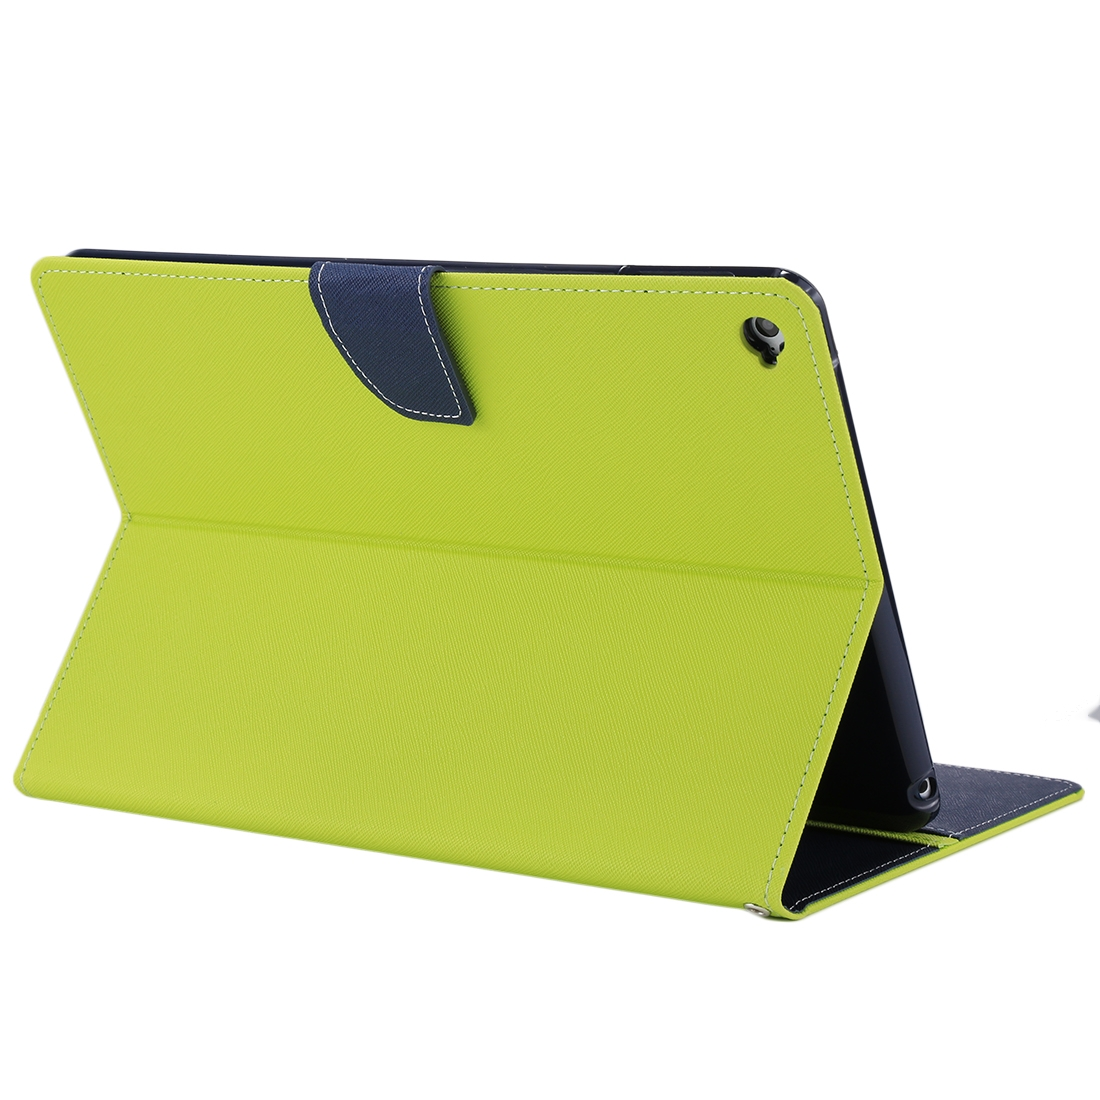 iPad Air 2 Case Cross Texture Leather Case with Holder & Slim Profile (Green)